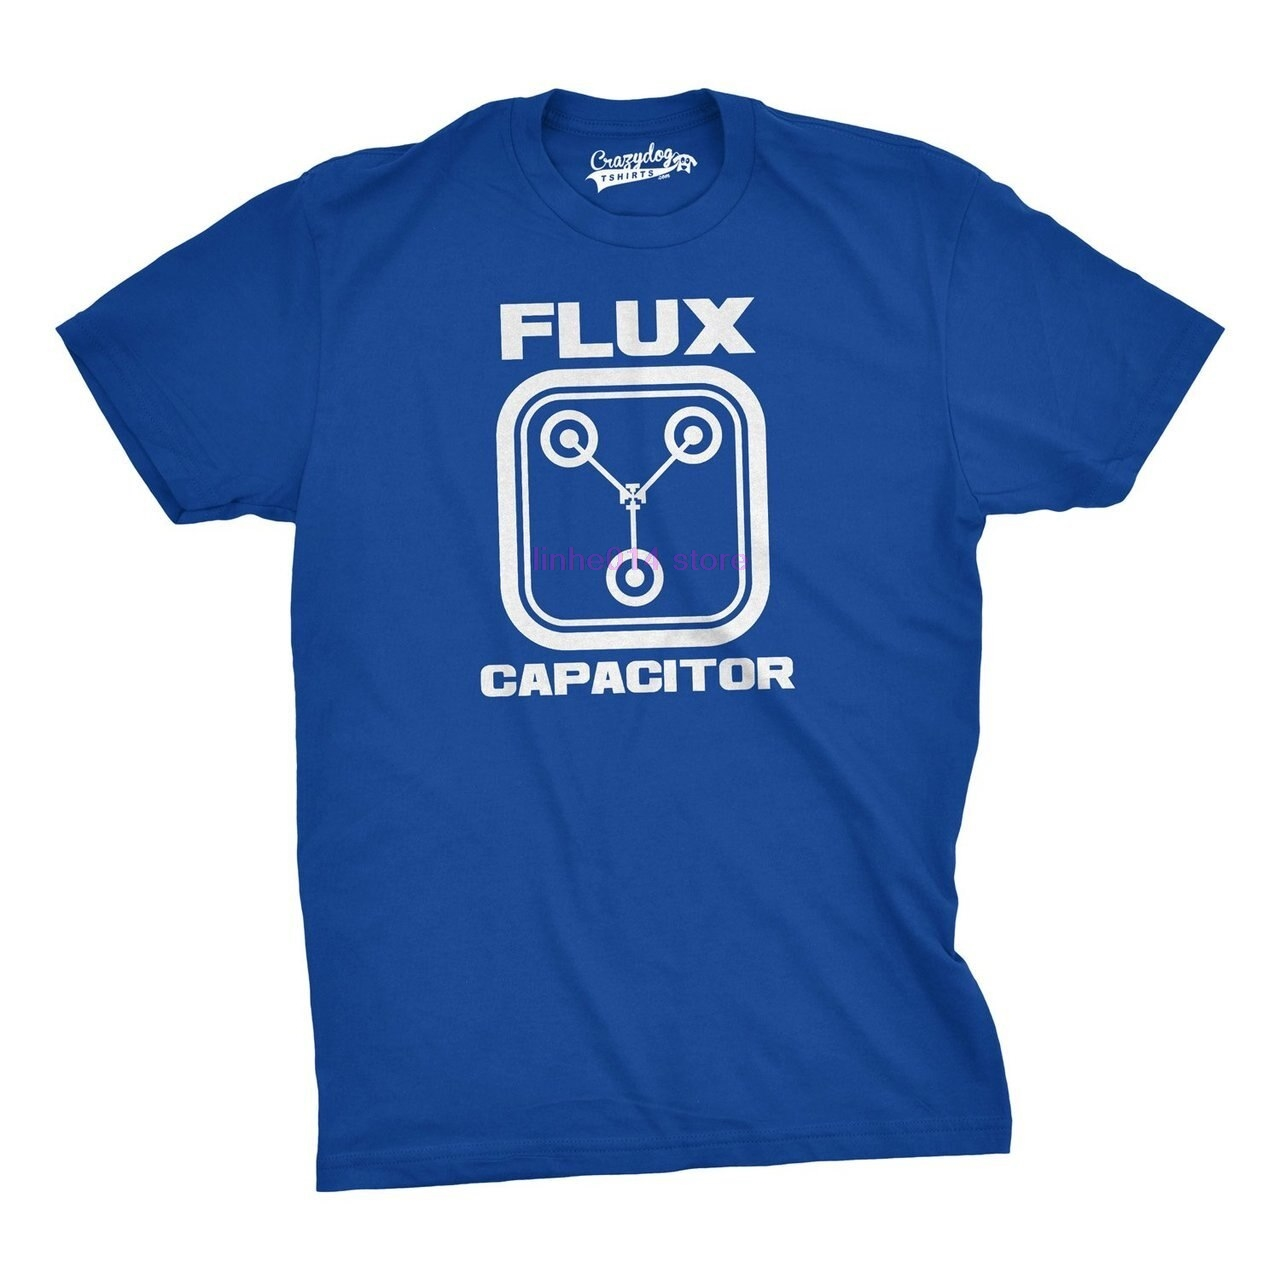 Clothing Flux Capacitor T Shirt Funny Vintage Retro 80s Movie T Shirts for Men 3178